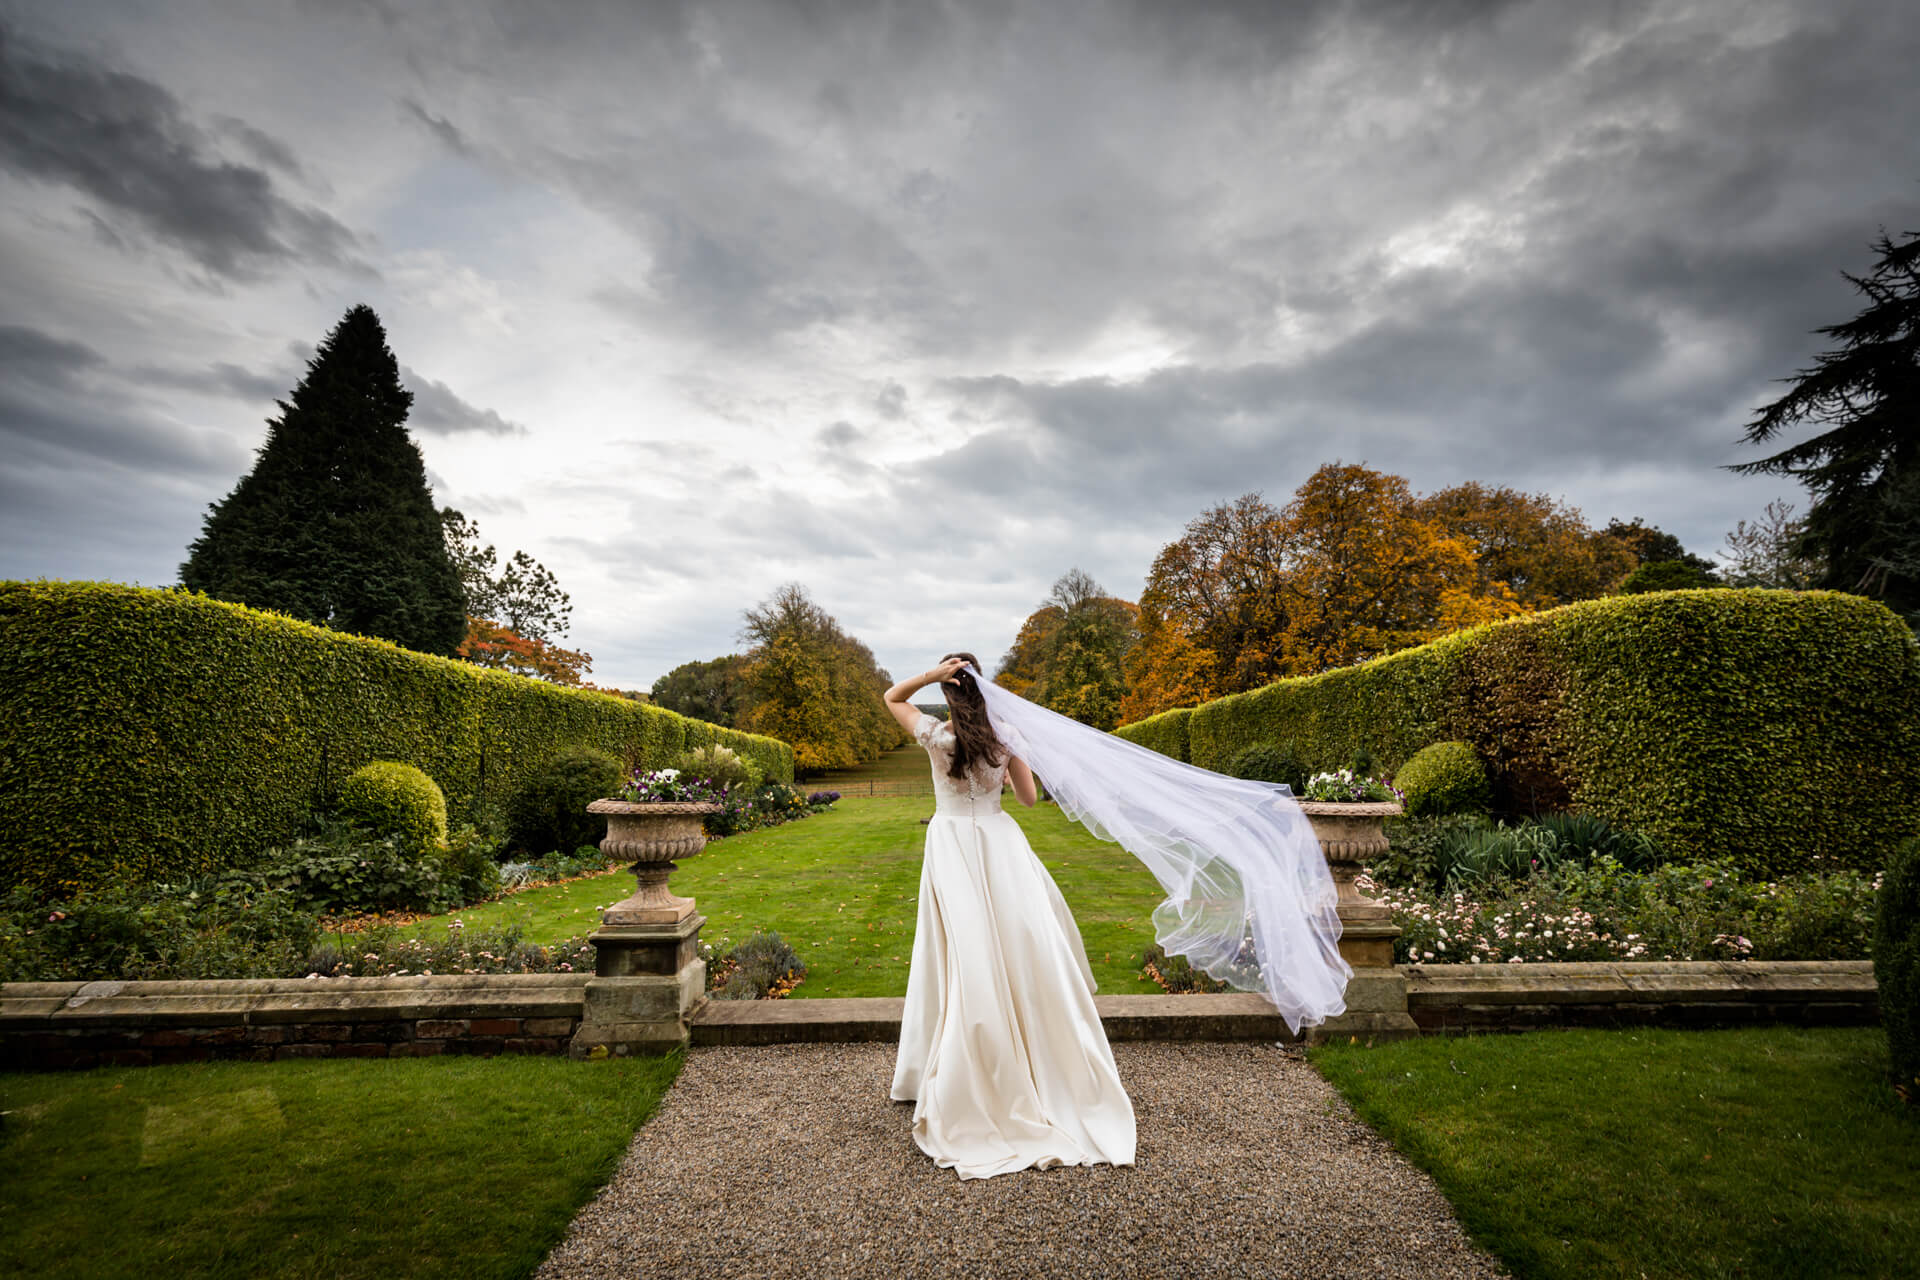 bride fixing her veil in the wind at Goldsborough Hall